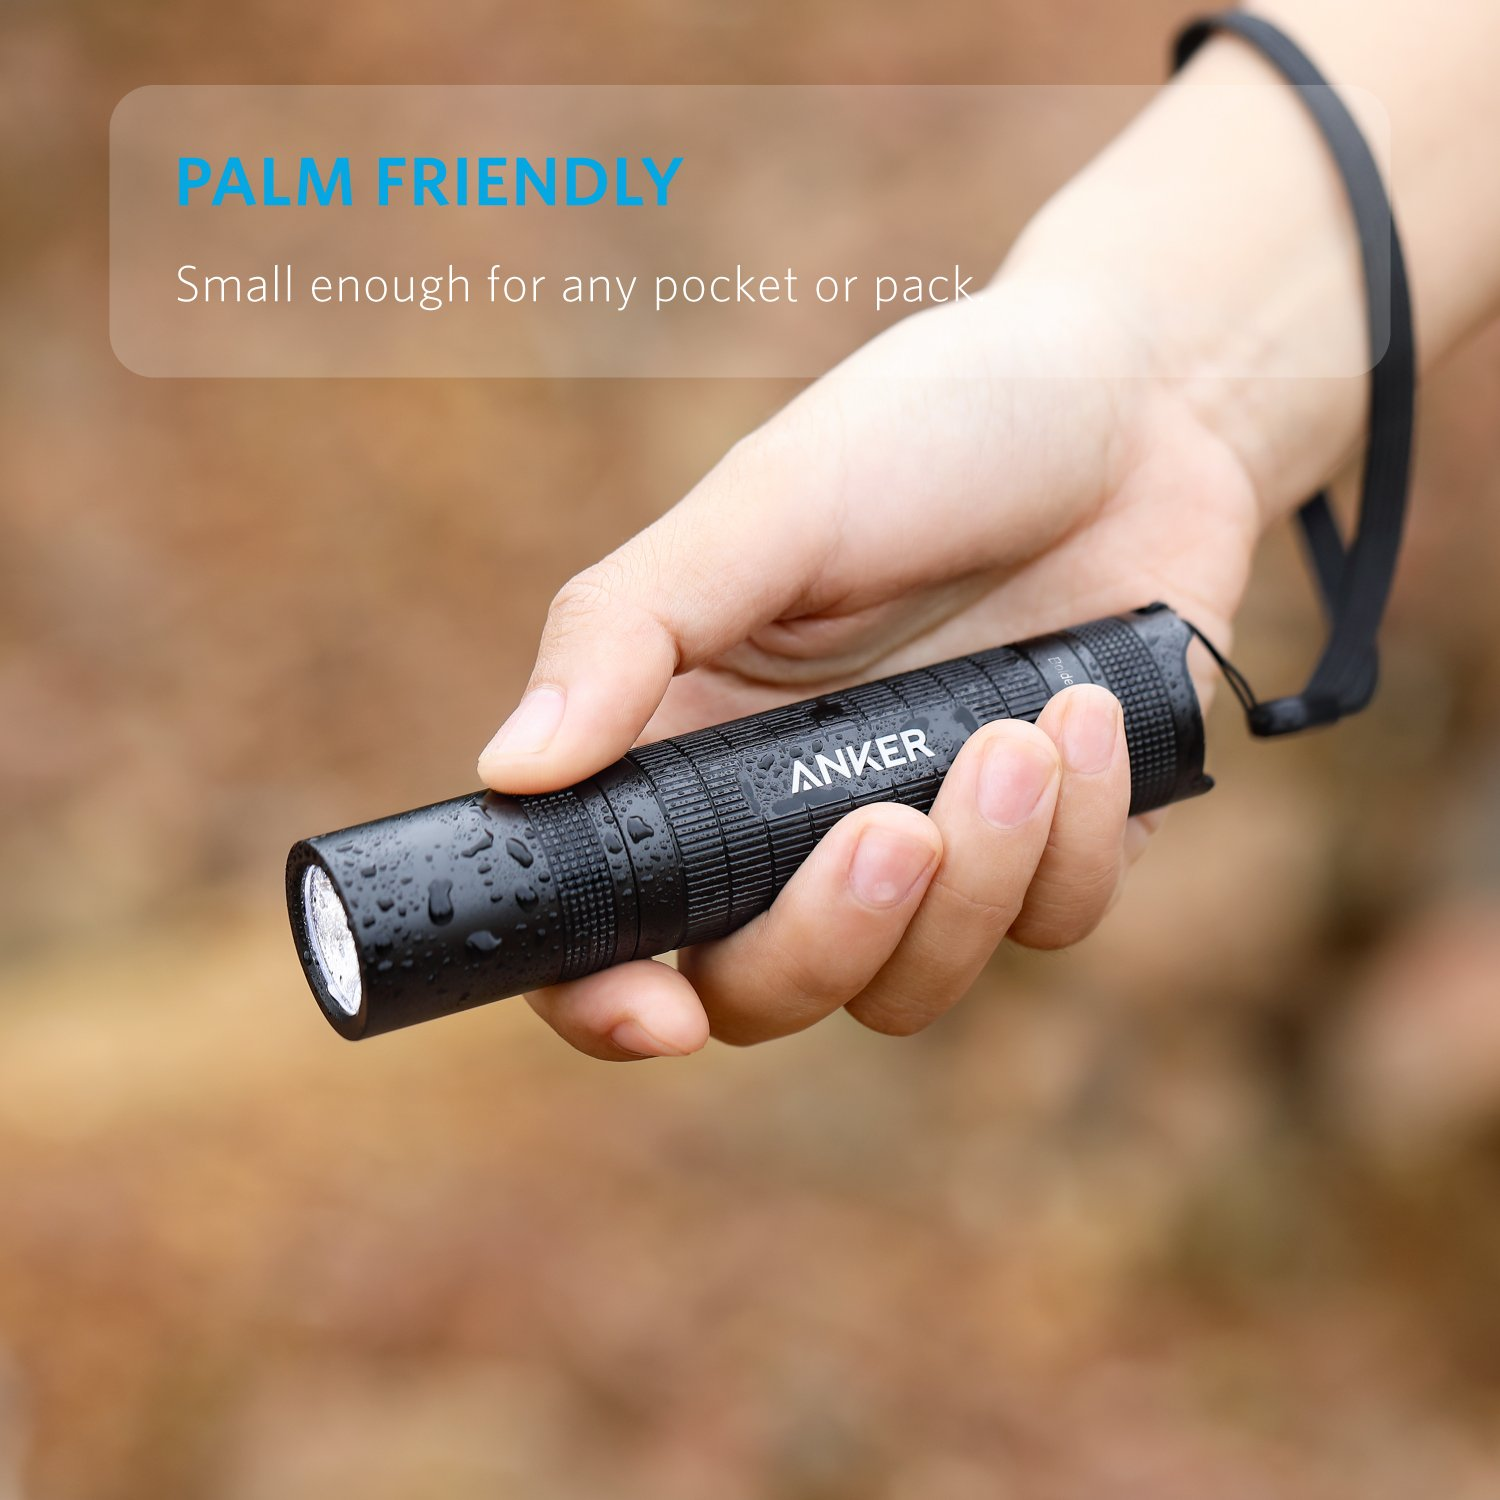 IP65 Water Resistant Super Bright 400 Lumens CREE LED Pocket-Sized LED Torch 3 Modes High//Low//Strobe for Indoors and Outdoors AK-E1421011 2 PACK Anker Bolder LC40 LED Flashlight